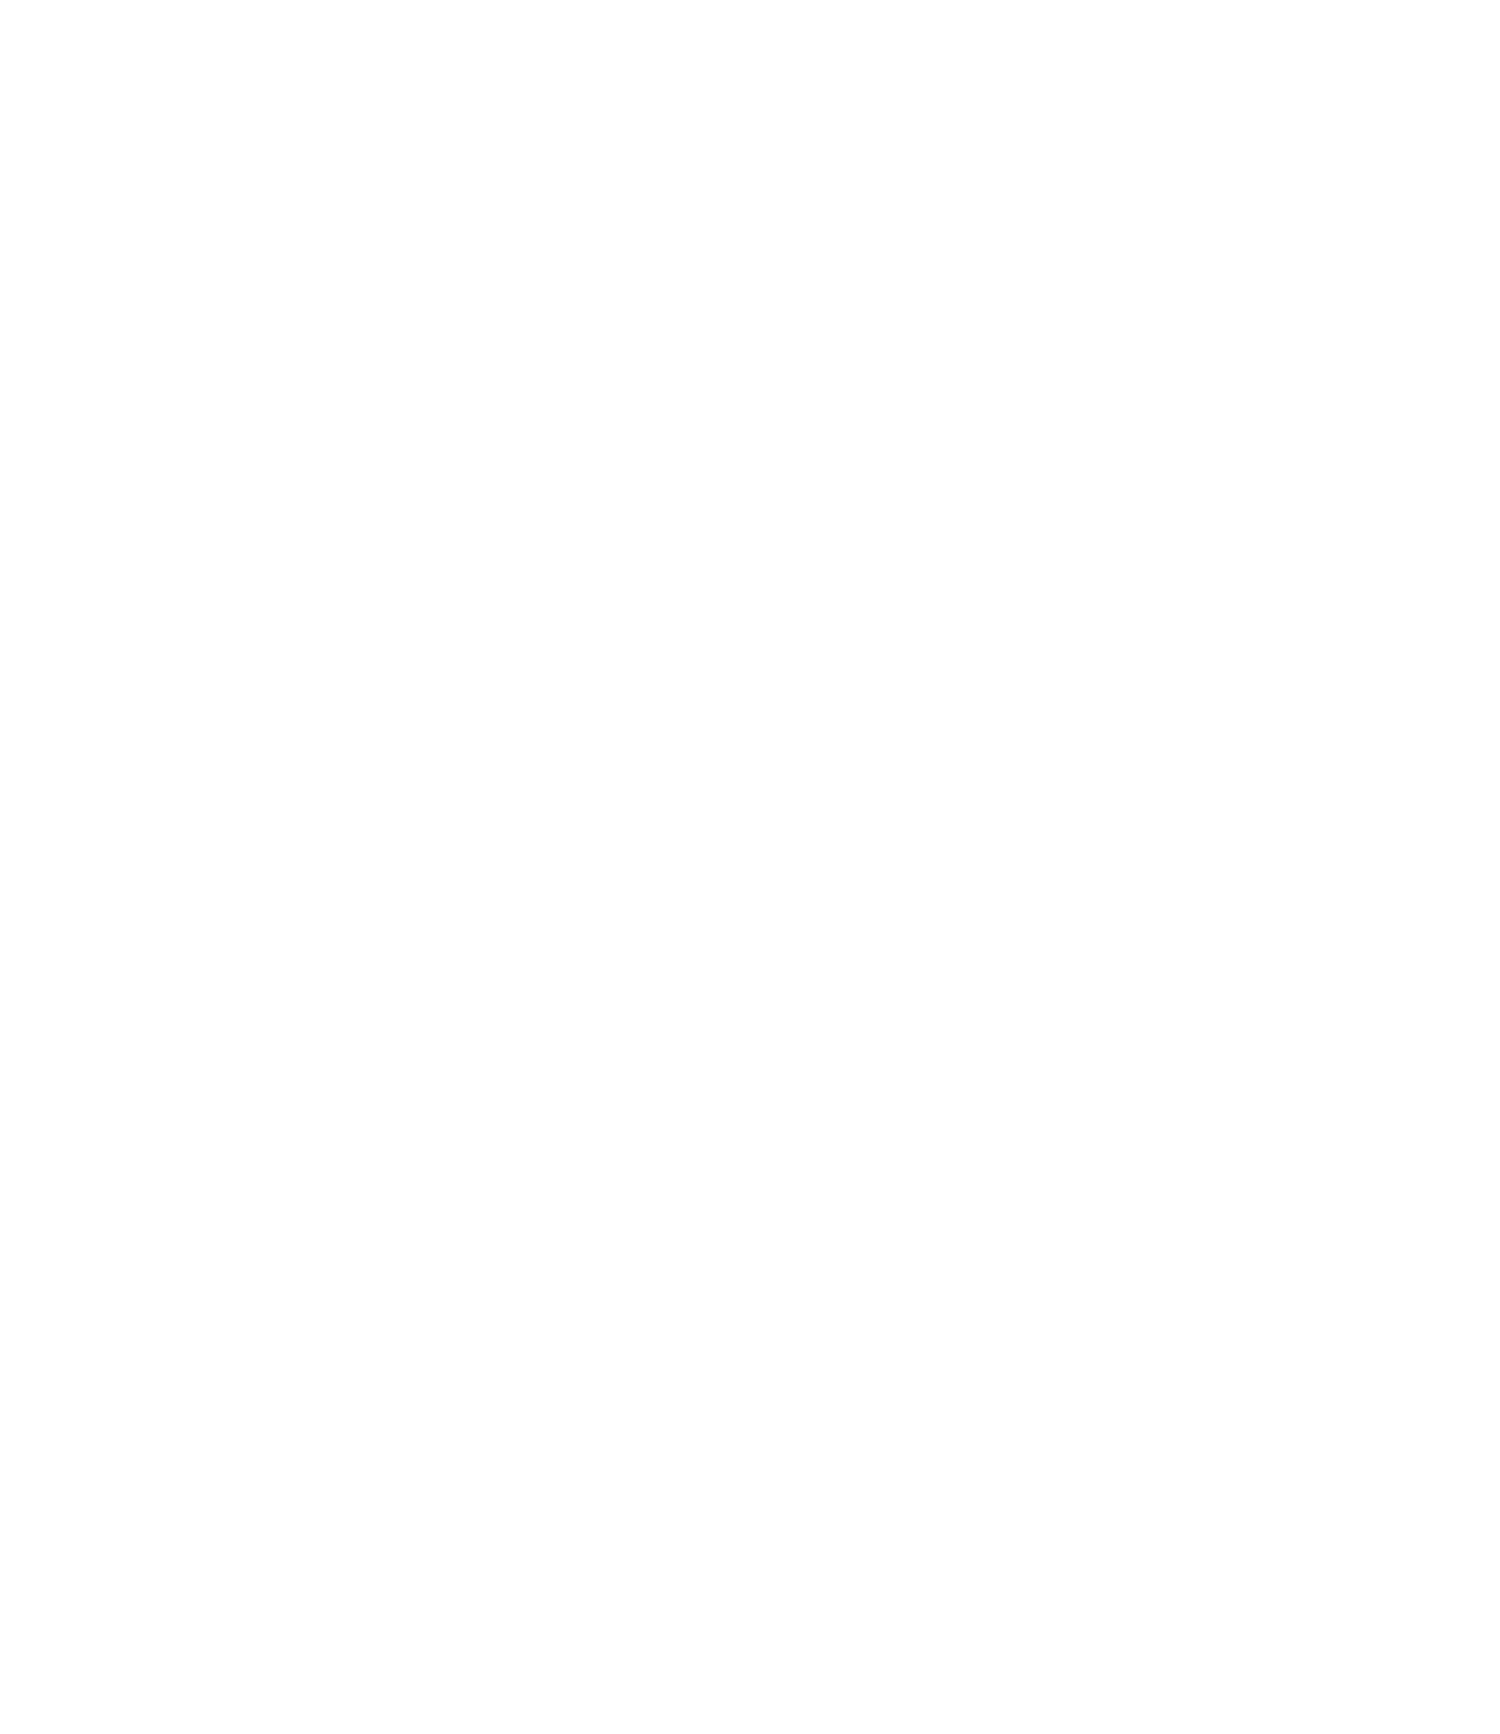 New Hall Lavender